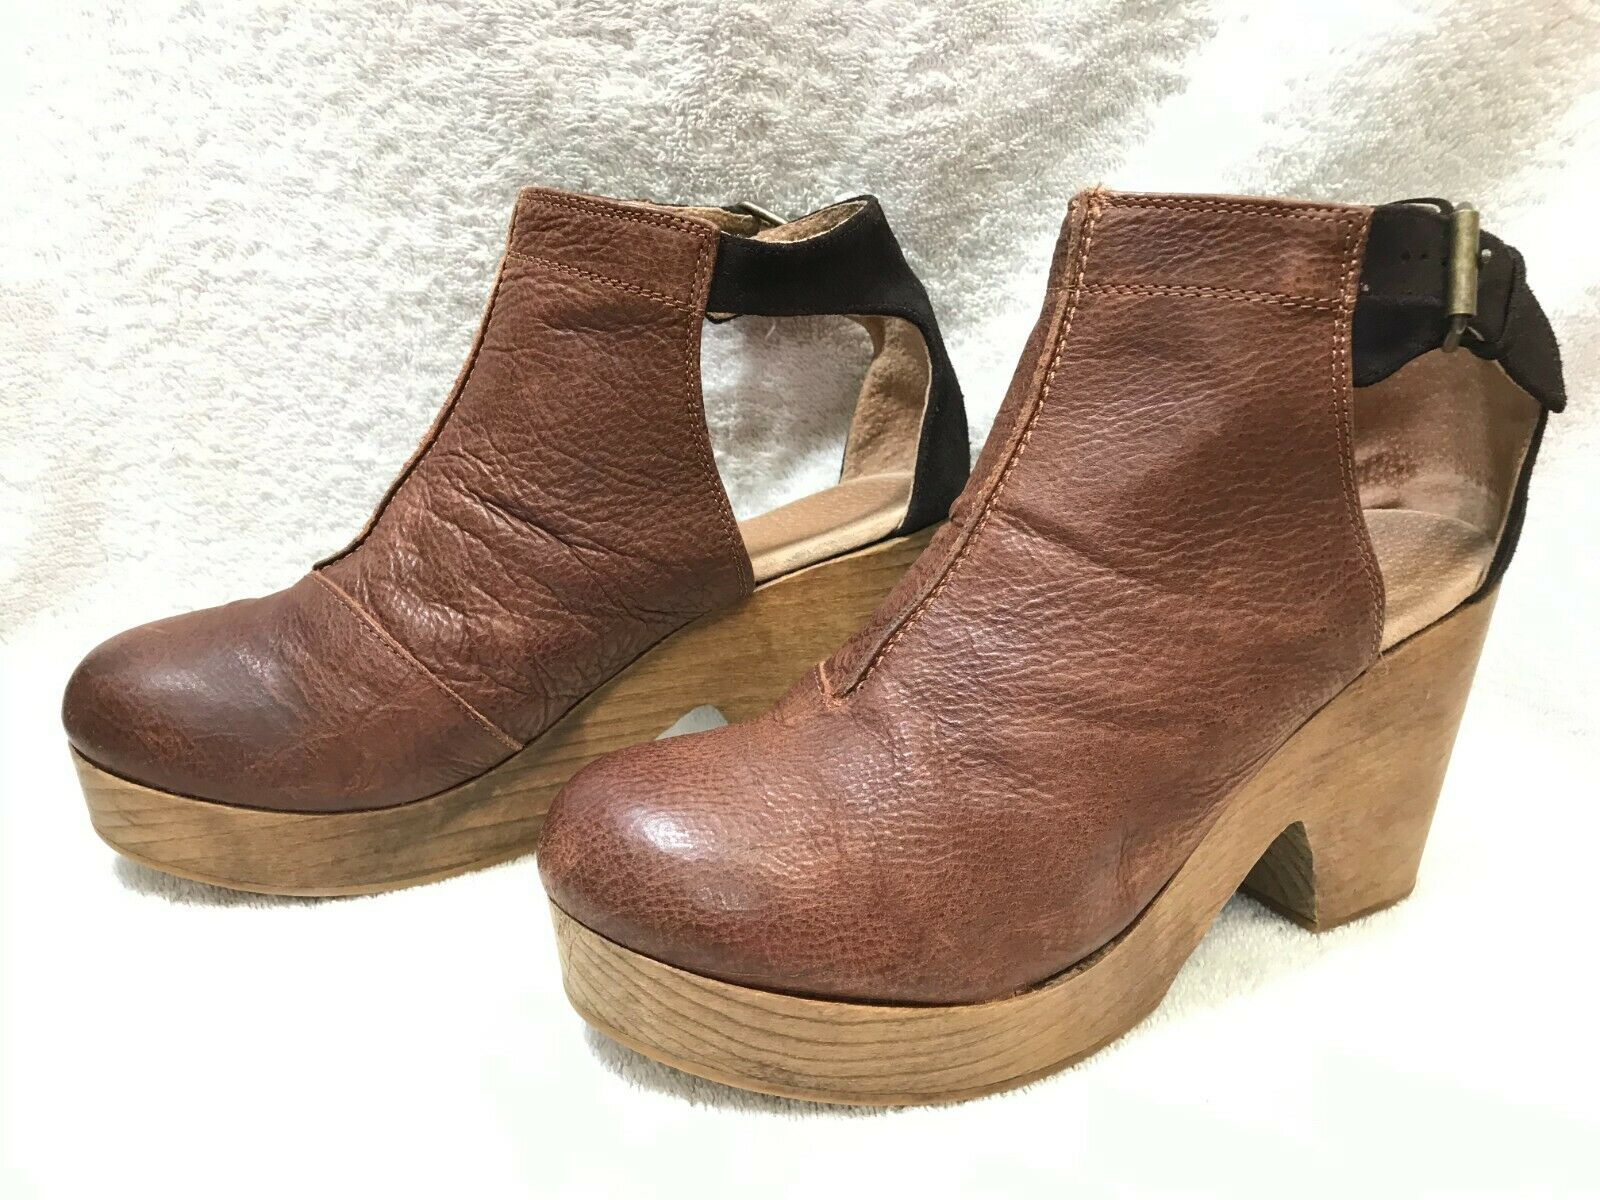 Free People Amber Orchard Leather Clog sz: 41 Closed Toe Ankle Strap Clogs